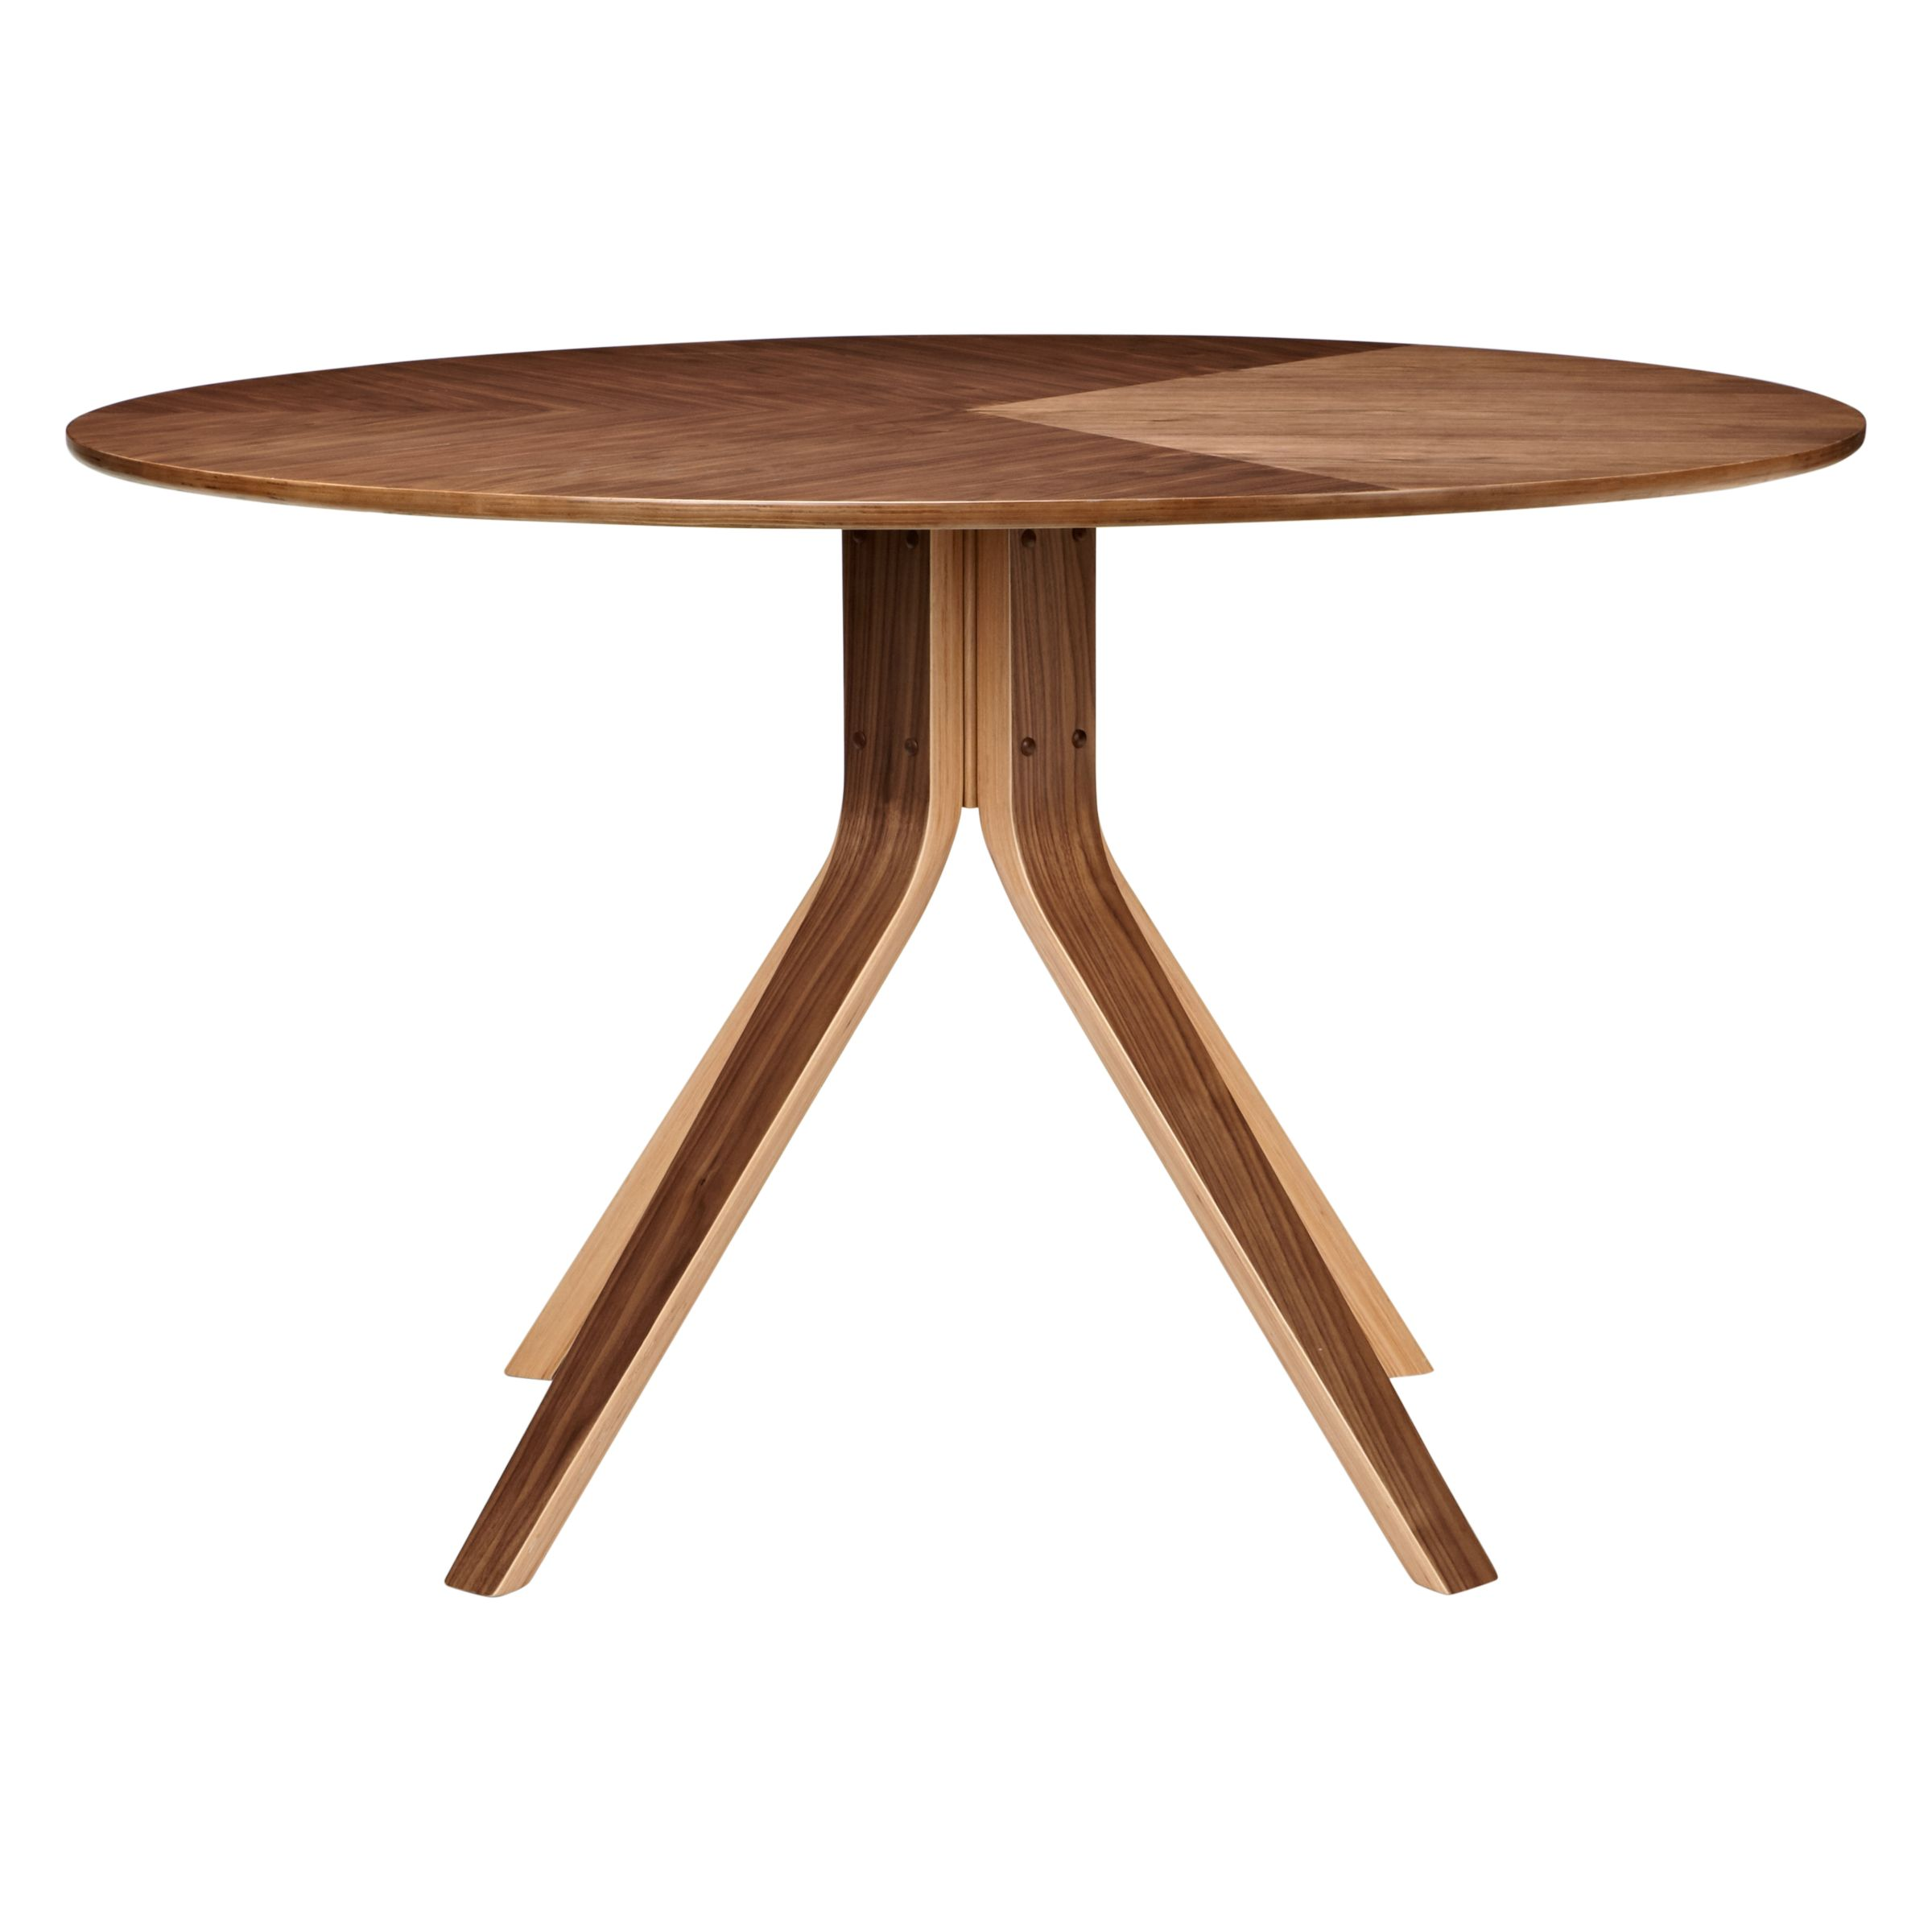 john lewis radar 6 seater round dining table walnut on